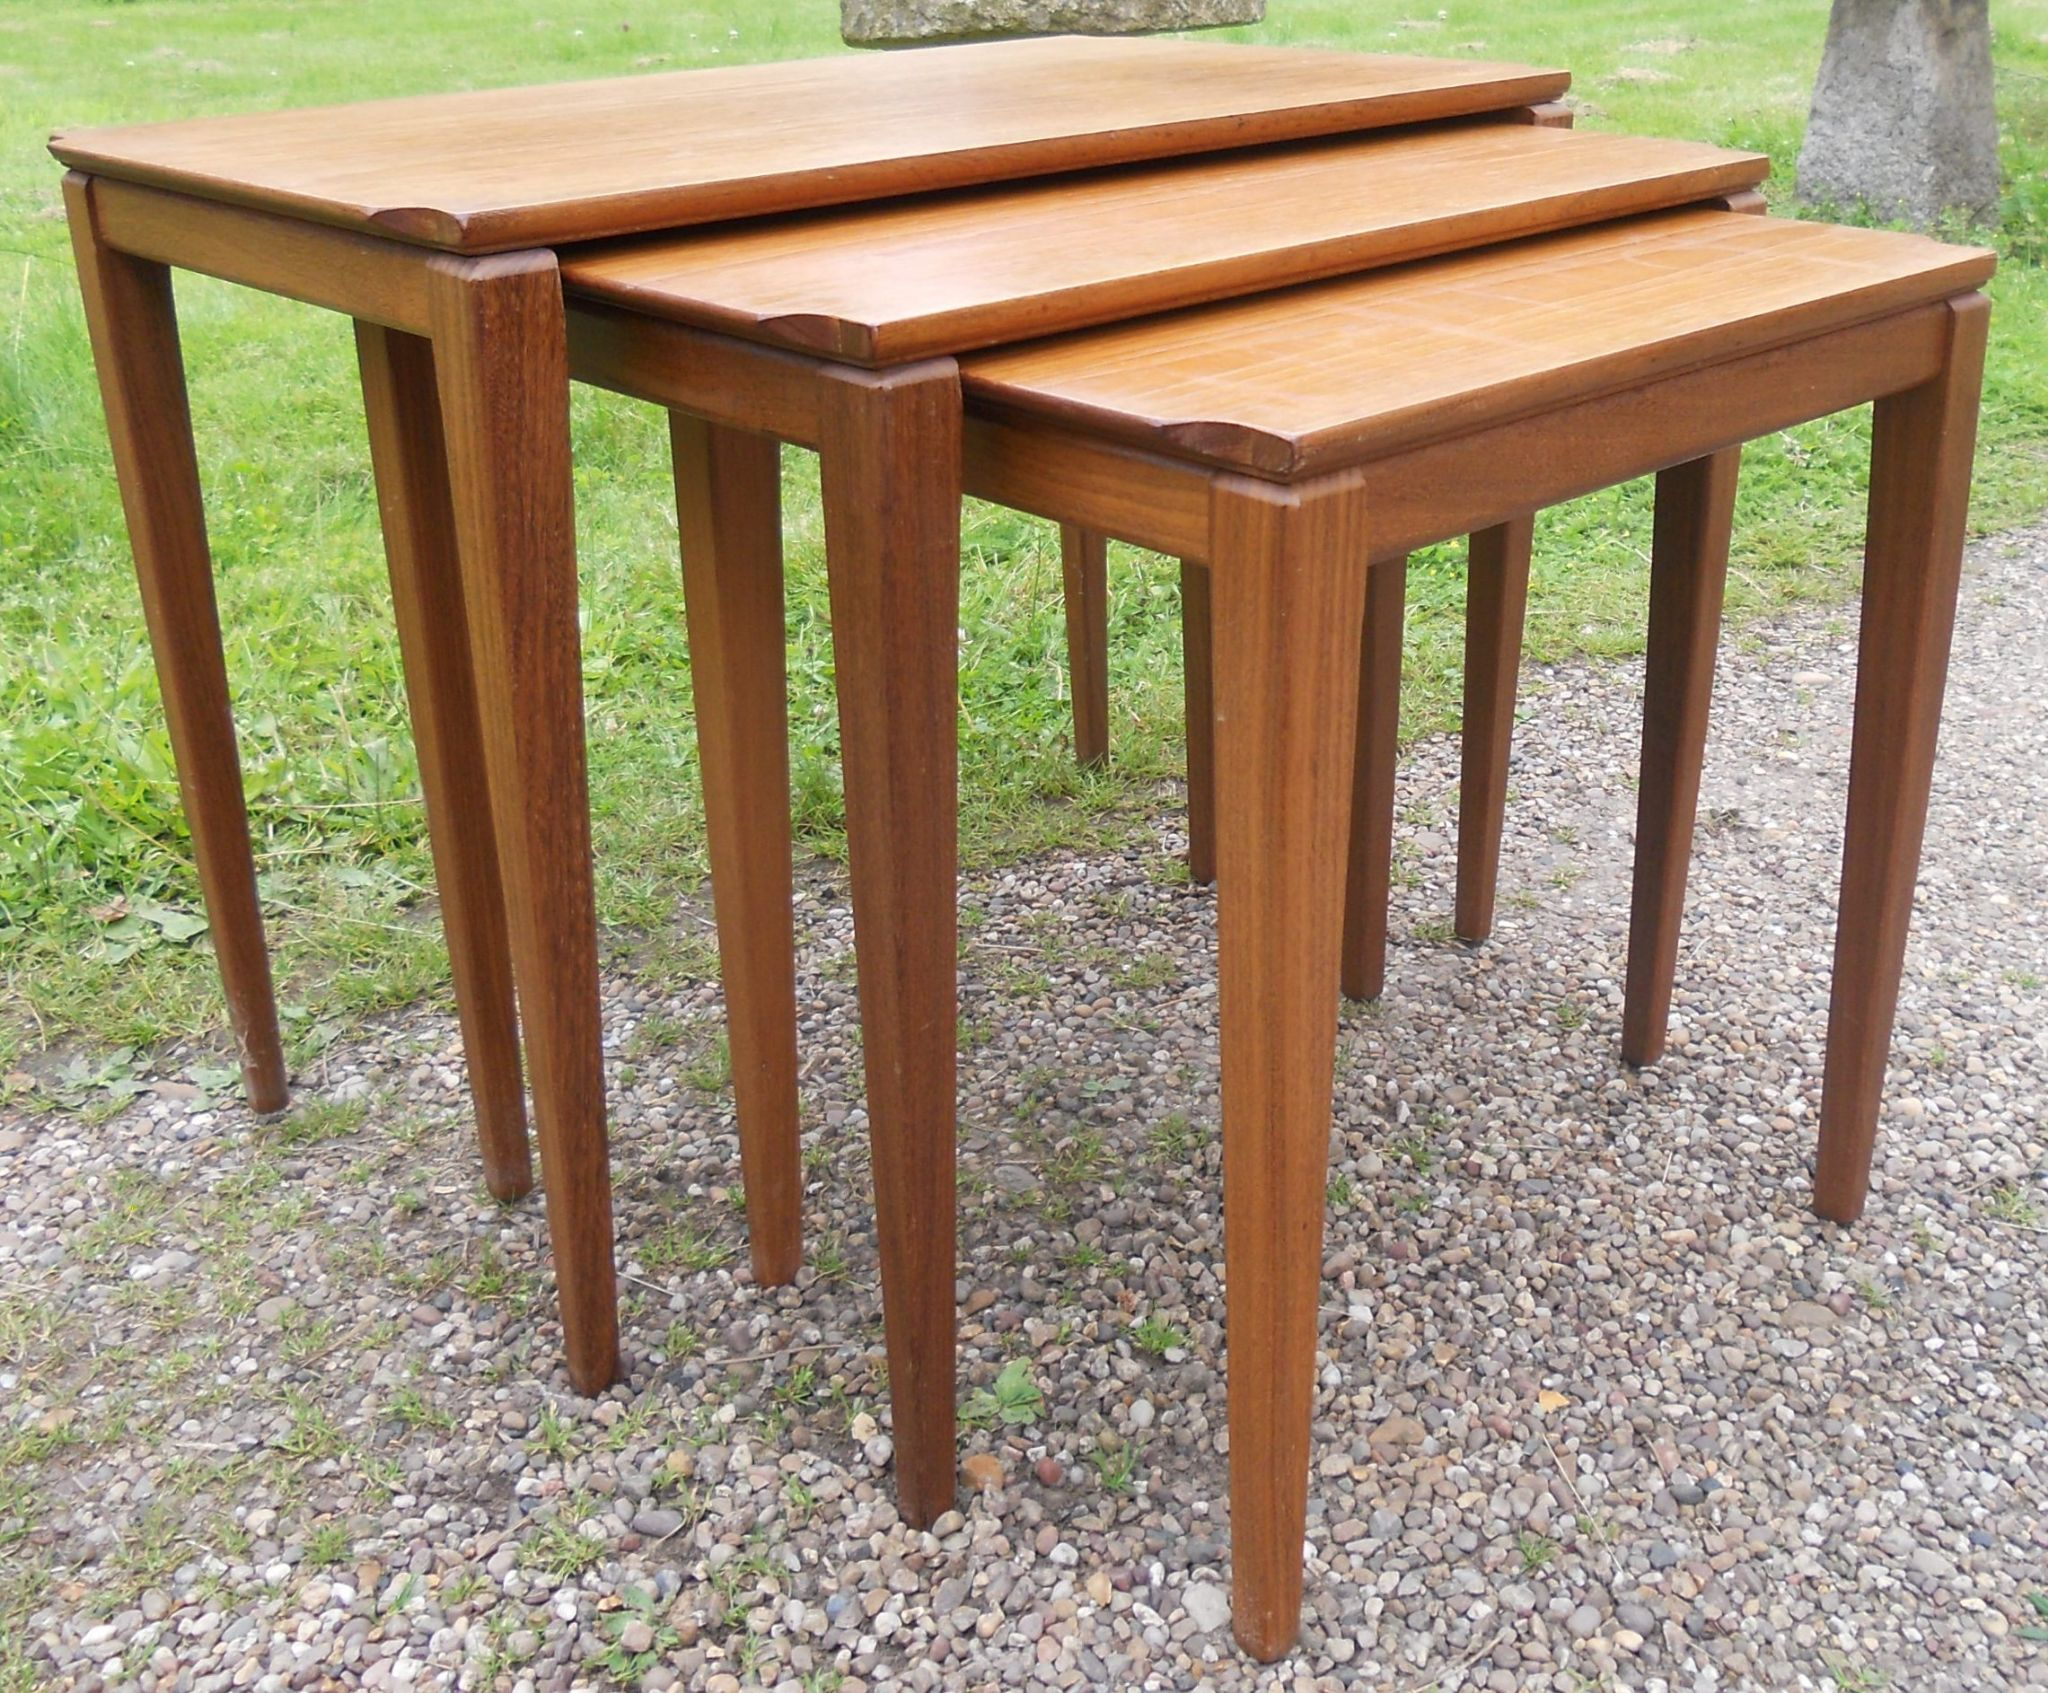 100 Retro Coffee Tables Uk Trend Sofa Side Table Uk  : retro 1960 s teak nest of three coffee tables 2 4795 p from 45.32.79.15 size 2048 x 1693 jpeg 652kB